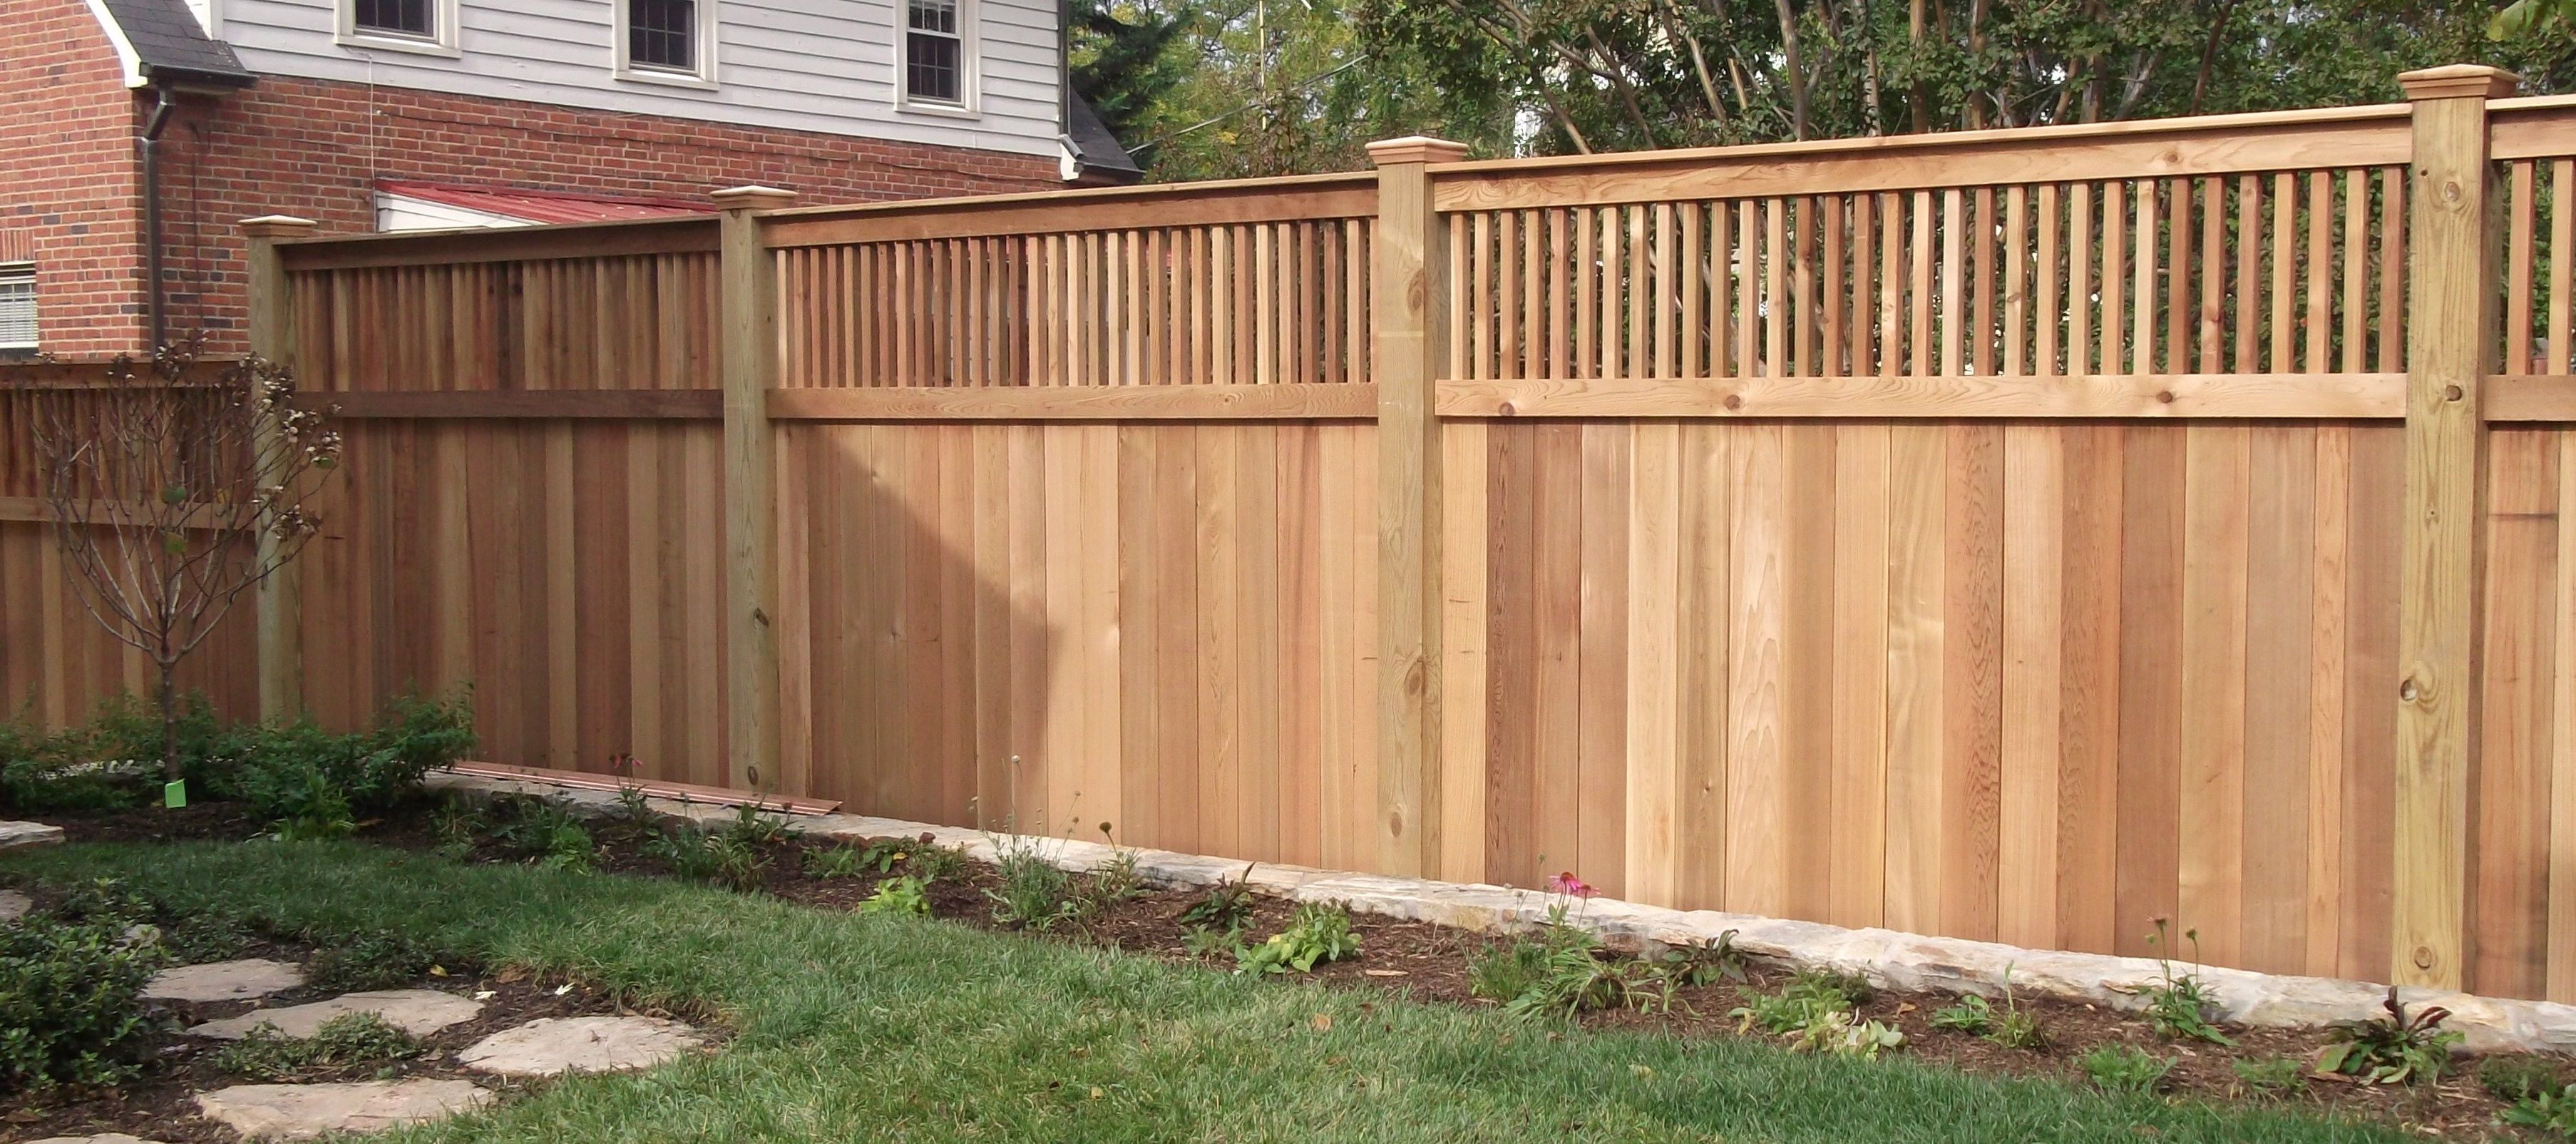 simple minimalis fence for huse design ideas home design home fence design